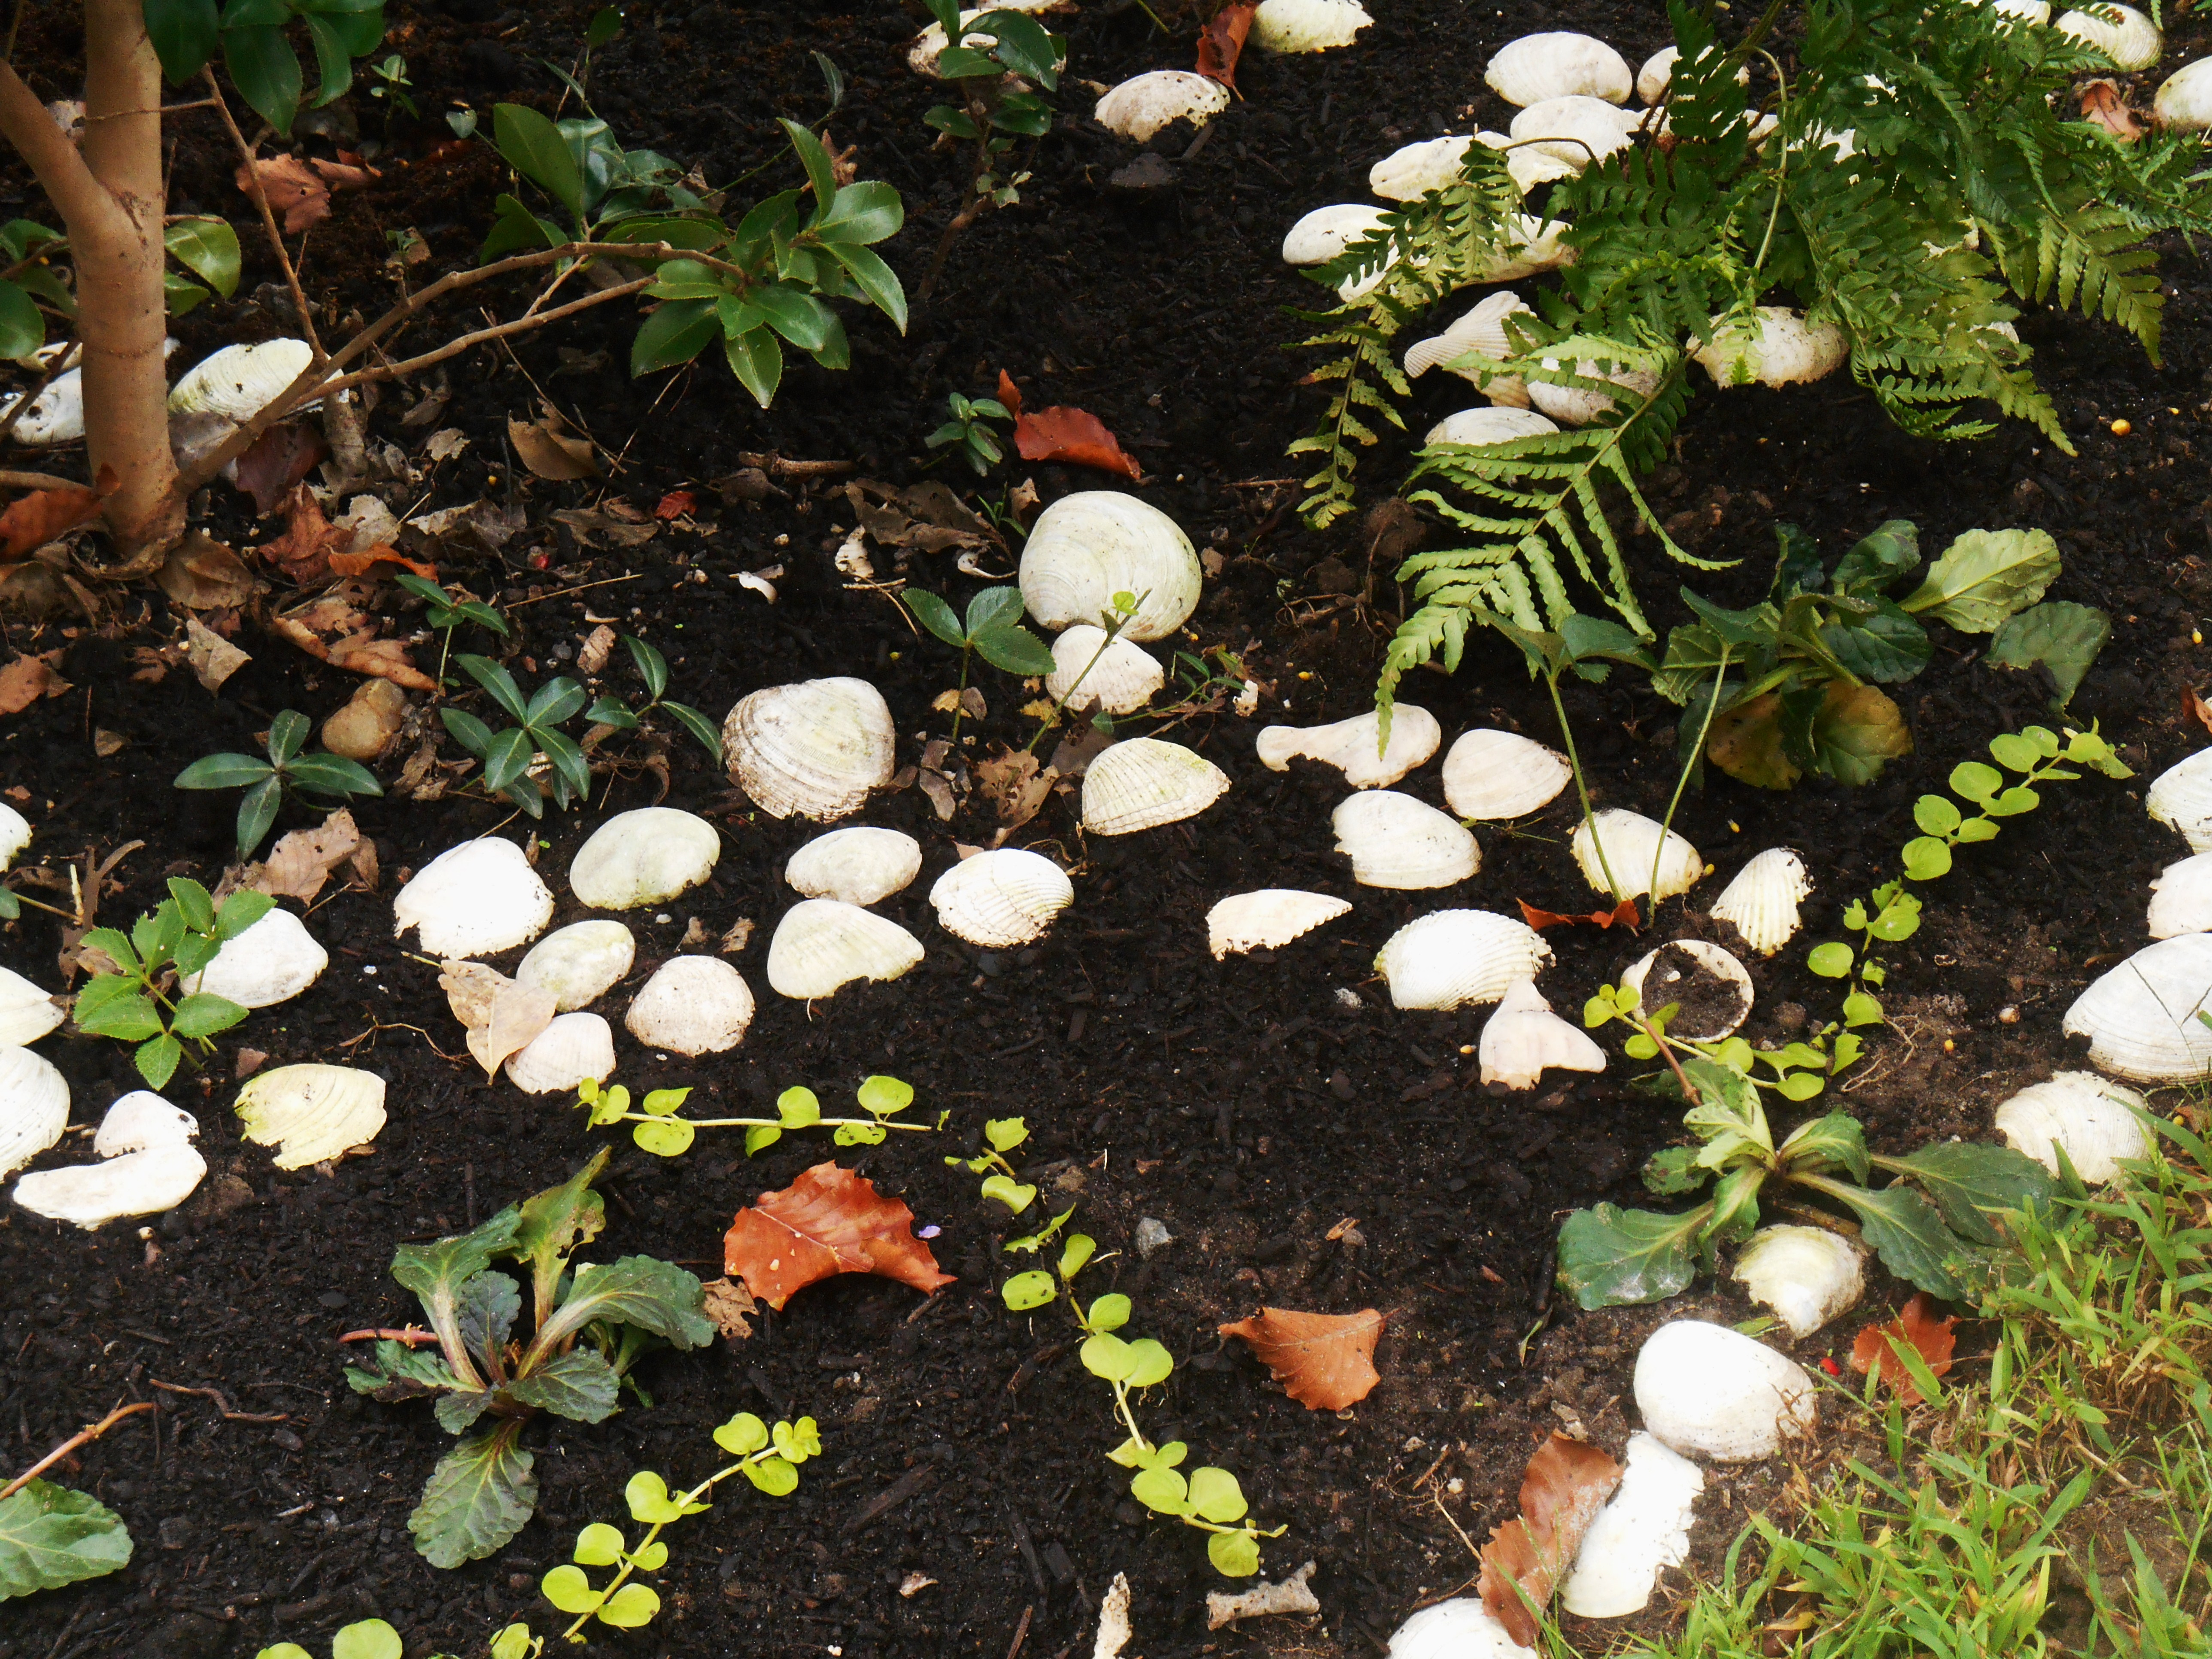 I began using shells in this bed to hold the compost and discourage digging by the